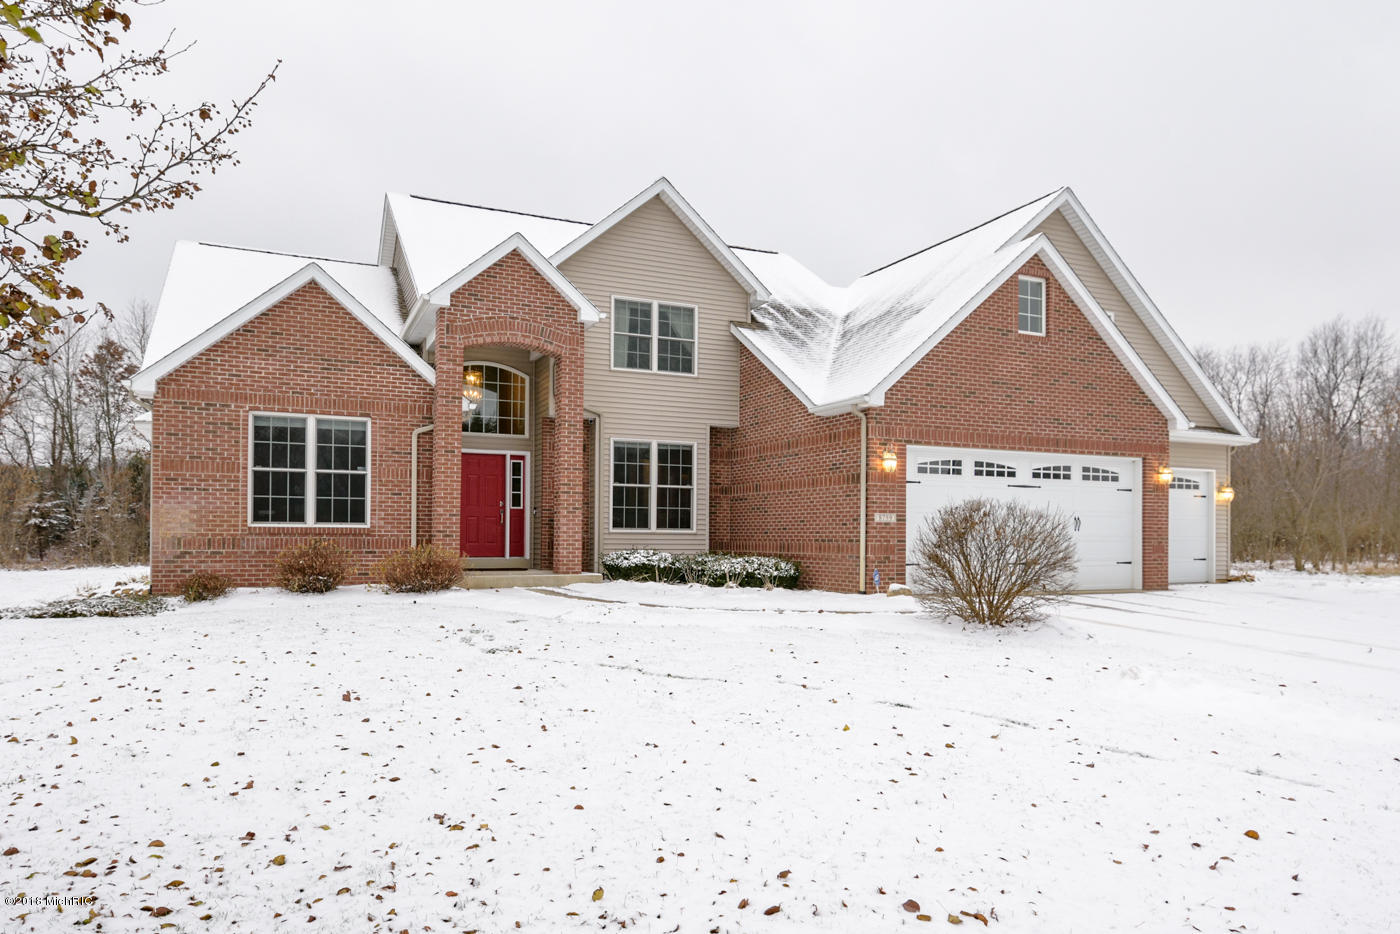 Photo for 8759 Camomile Drive, Augusta, MI 49012 (MLS # 18057366)